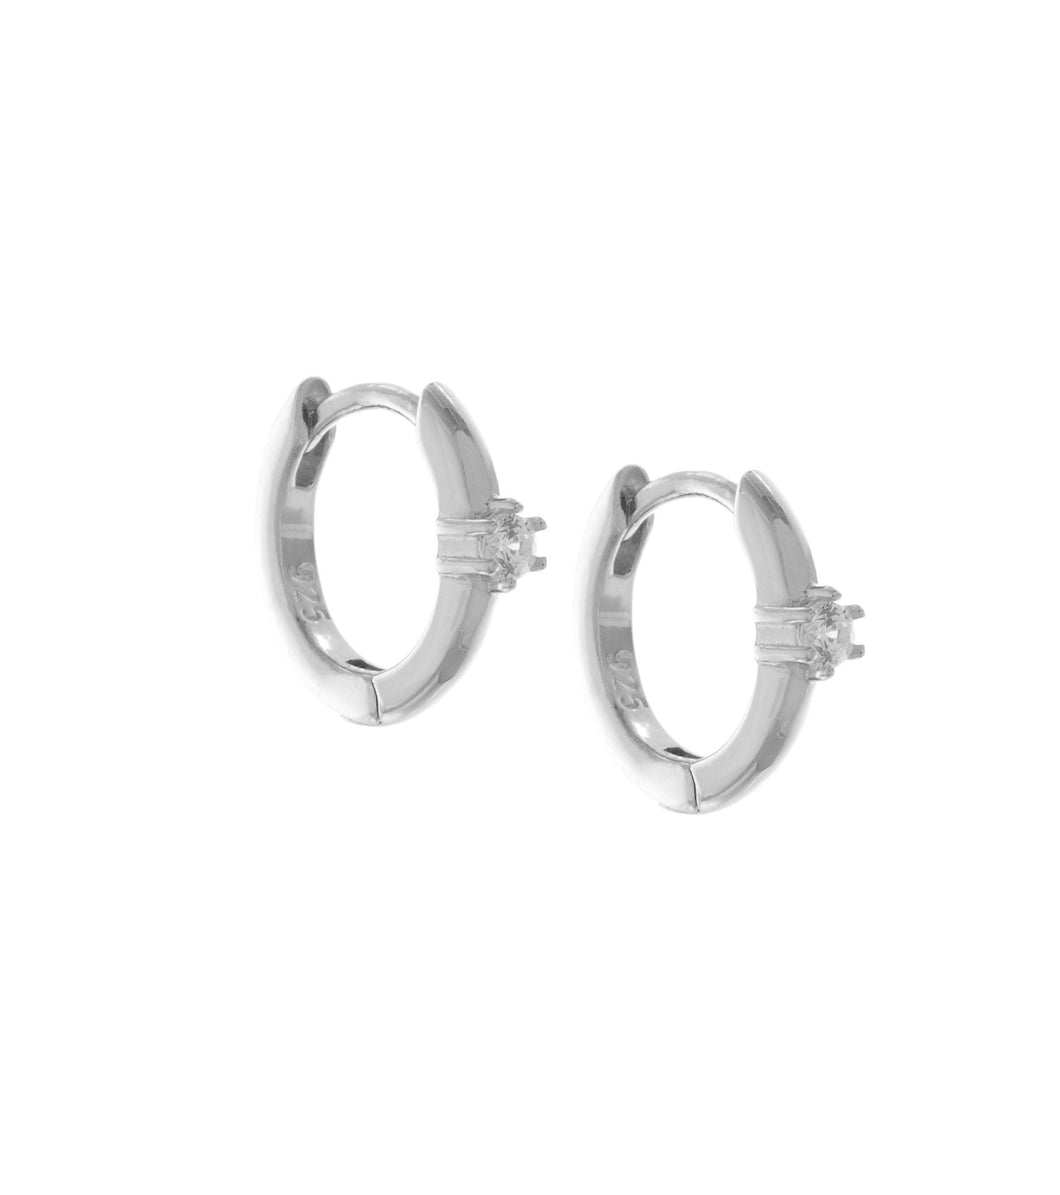 SOLITAIRE INLAY HOOP EARRINGS